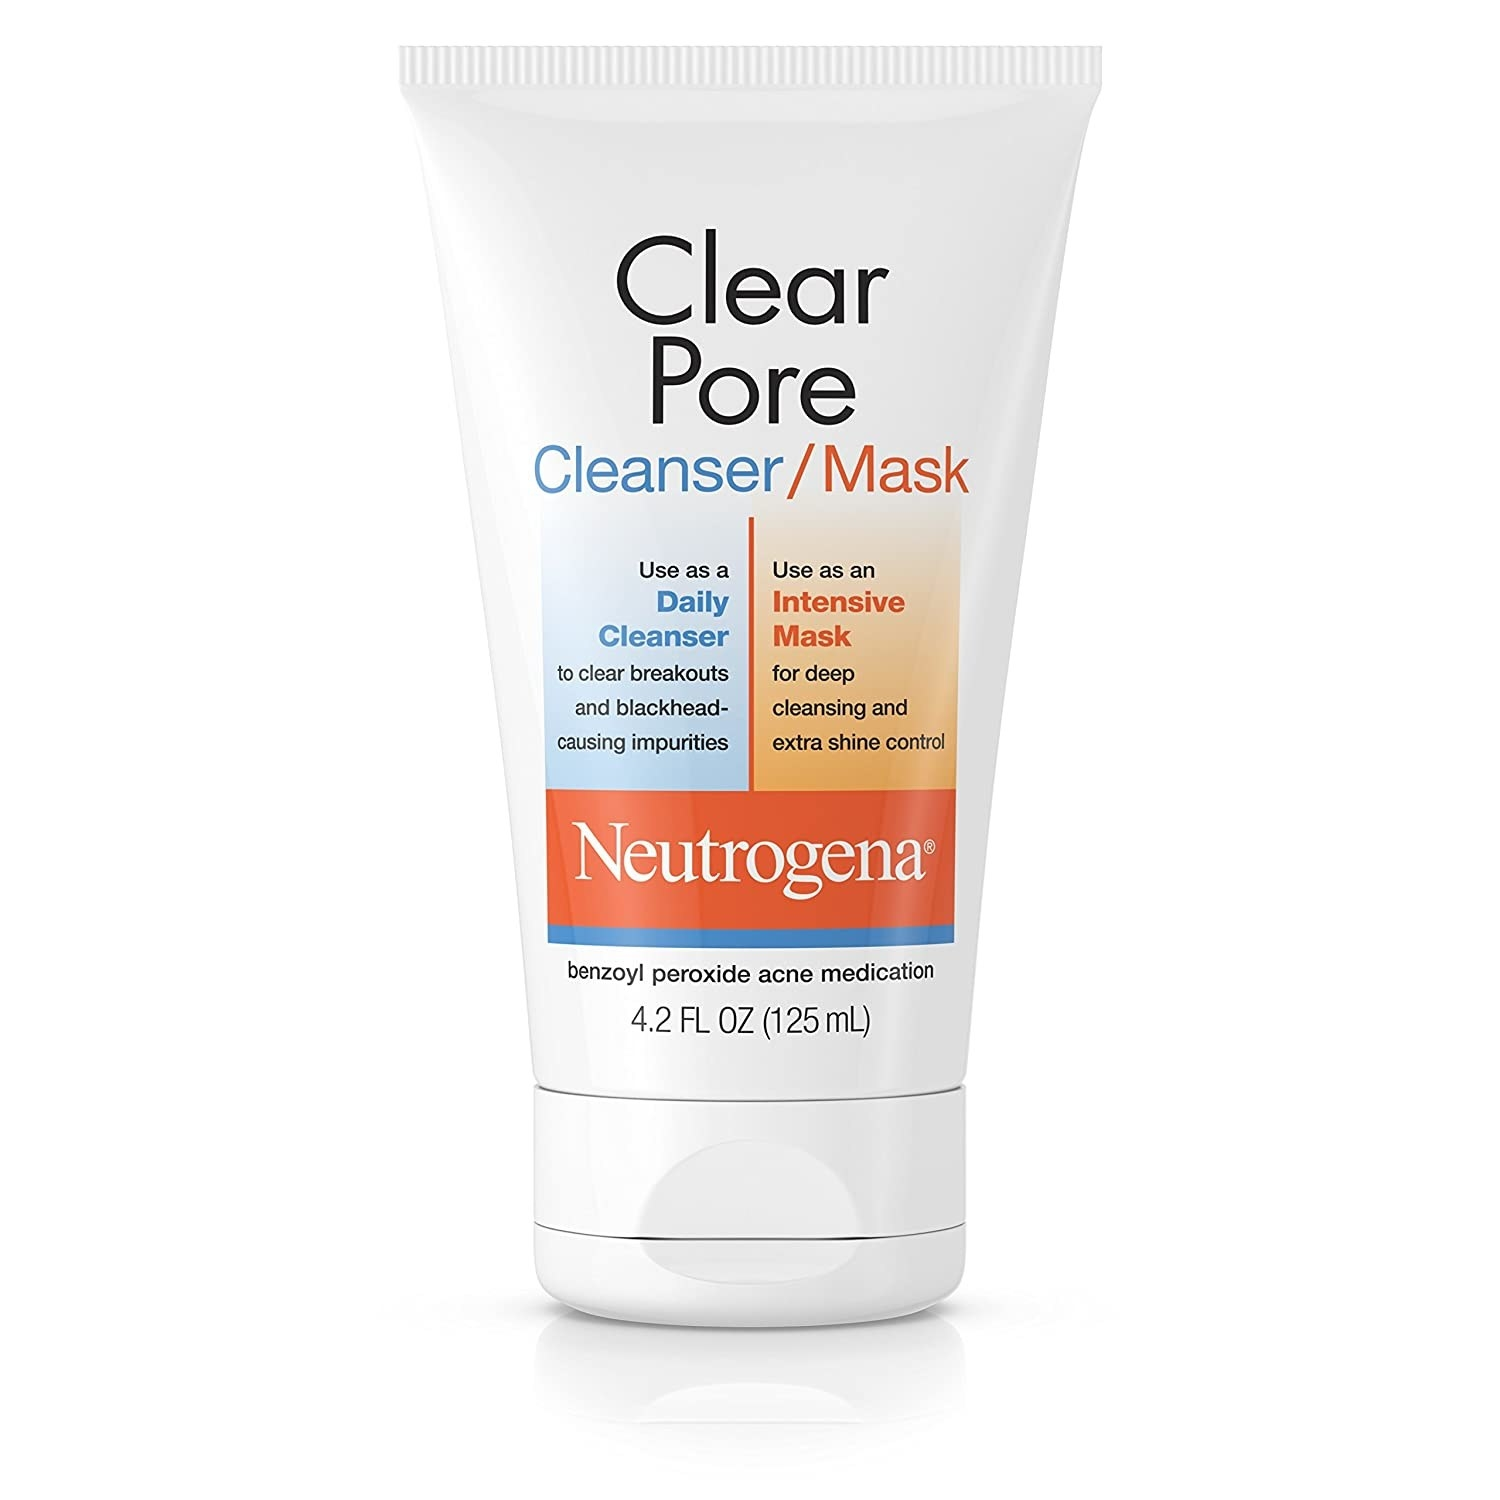 A bottle of Neutrogena Clear Pore Benzoyl Peroxide Mask/Cleanser.